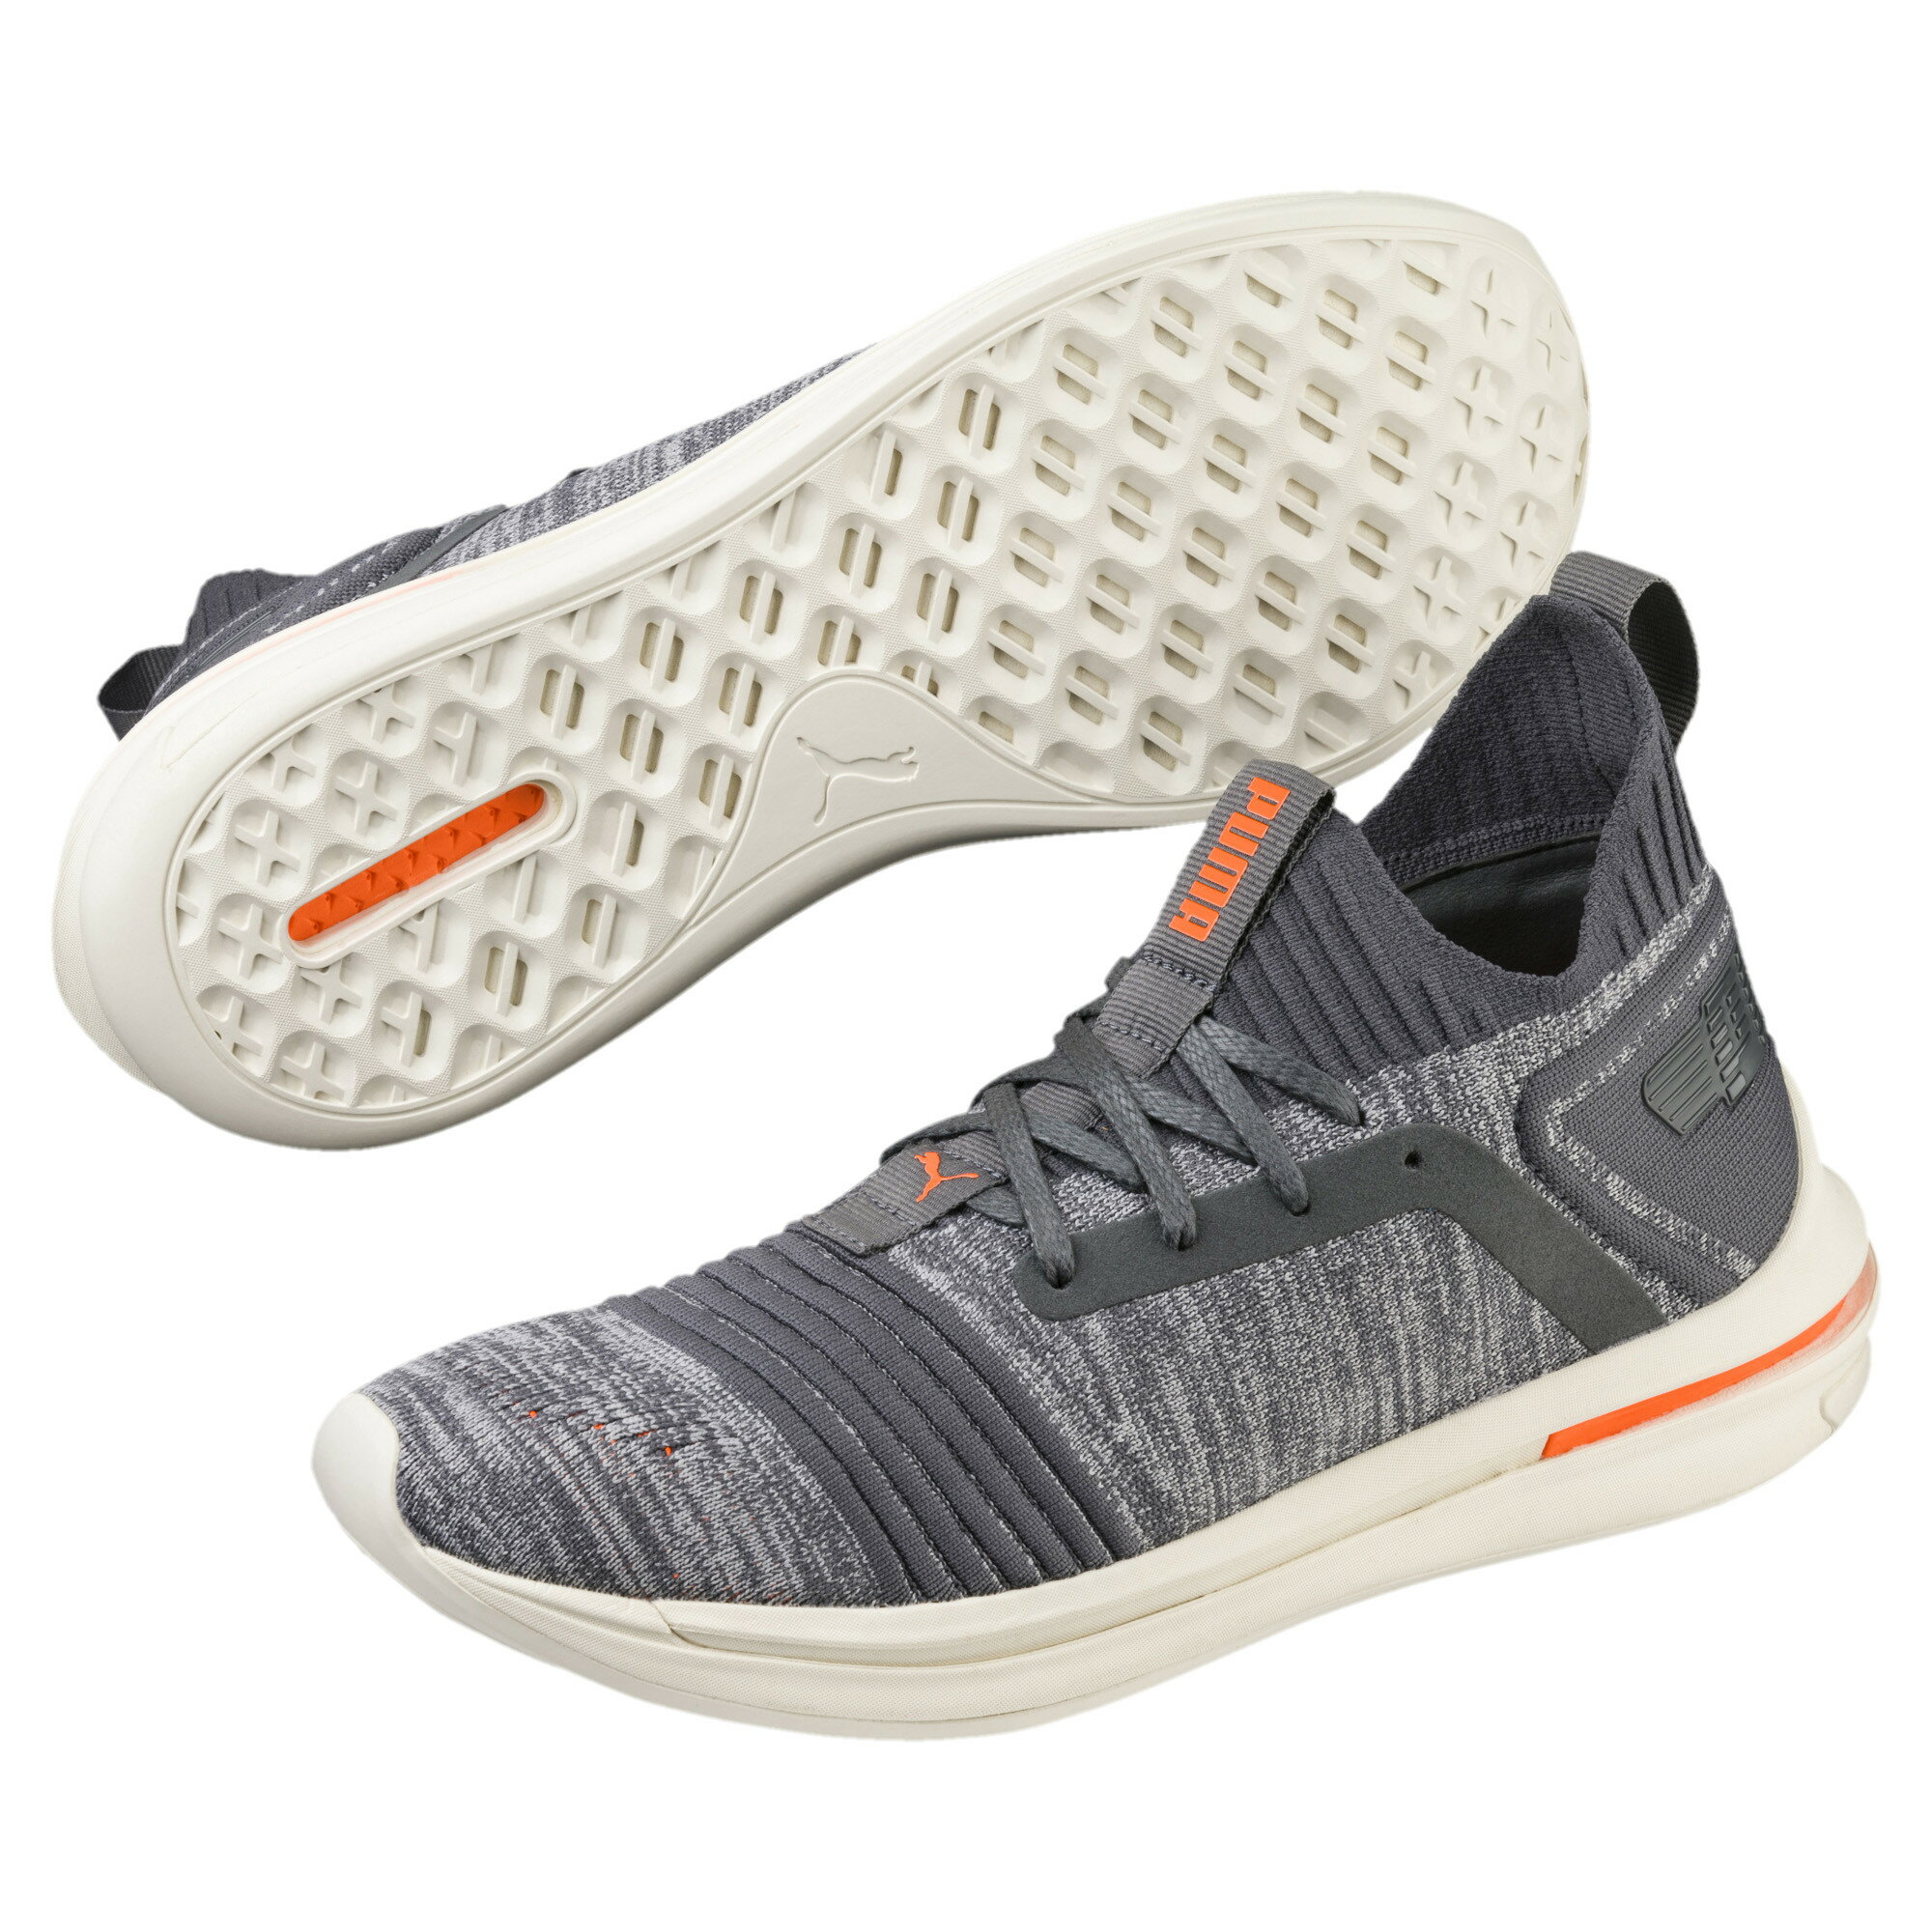 Official Puma Store  PUMA IGNITE Limitless SR evoKNIT Men s Sneakers ... 4af3d5d41